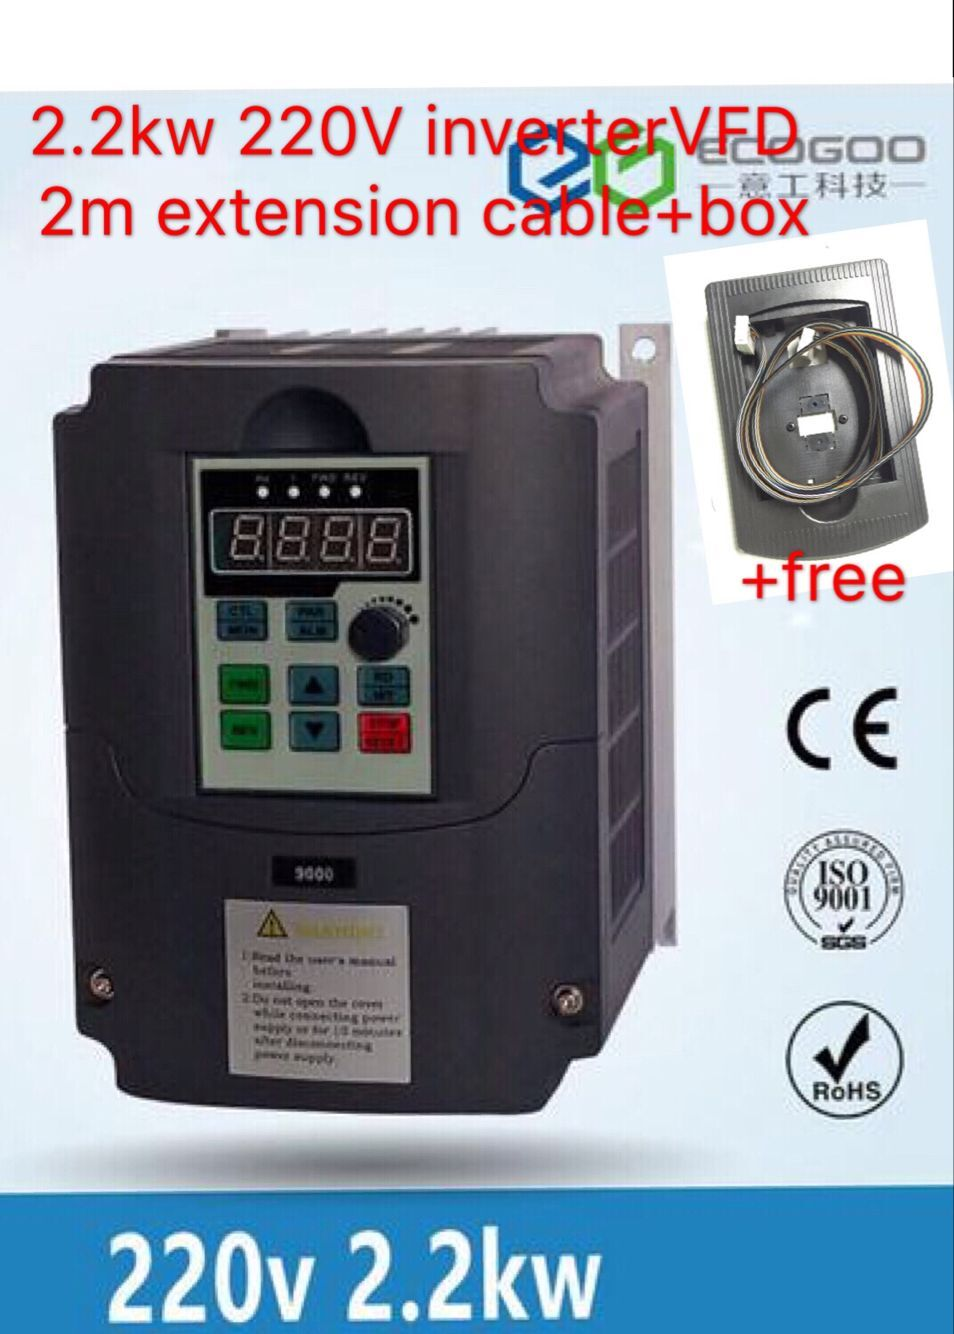 item 2.2KW Variable Frequency Drive VFD Inverter 3HP 220V for CNC router Spindle 2017 new item 2 2kw variable frequency drive vfd inverter 3hp 220v for cnc router spindle motor